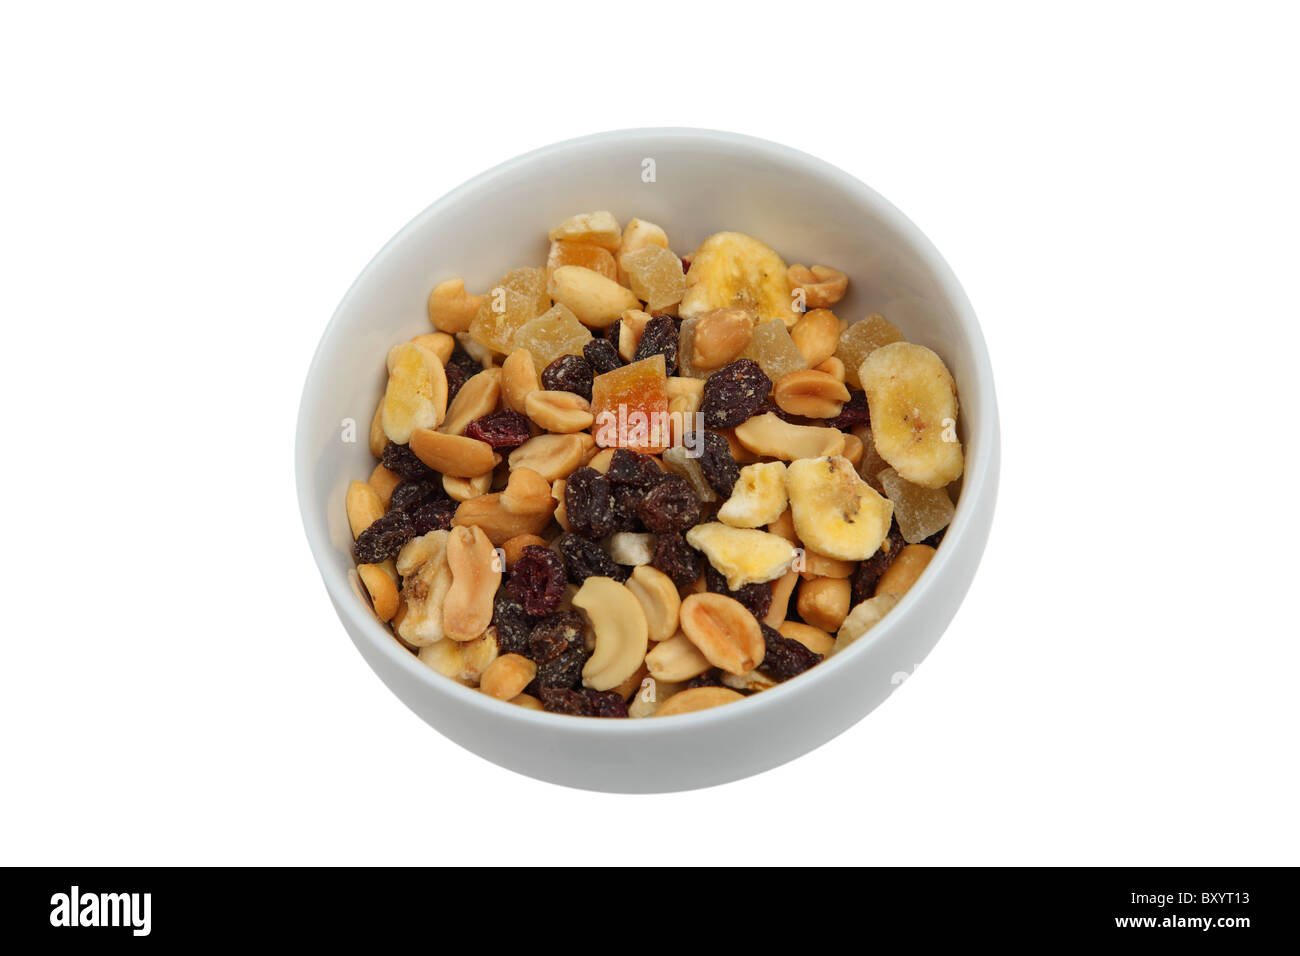 Trail mix in bowl on white background - Stock Image